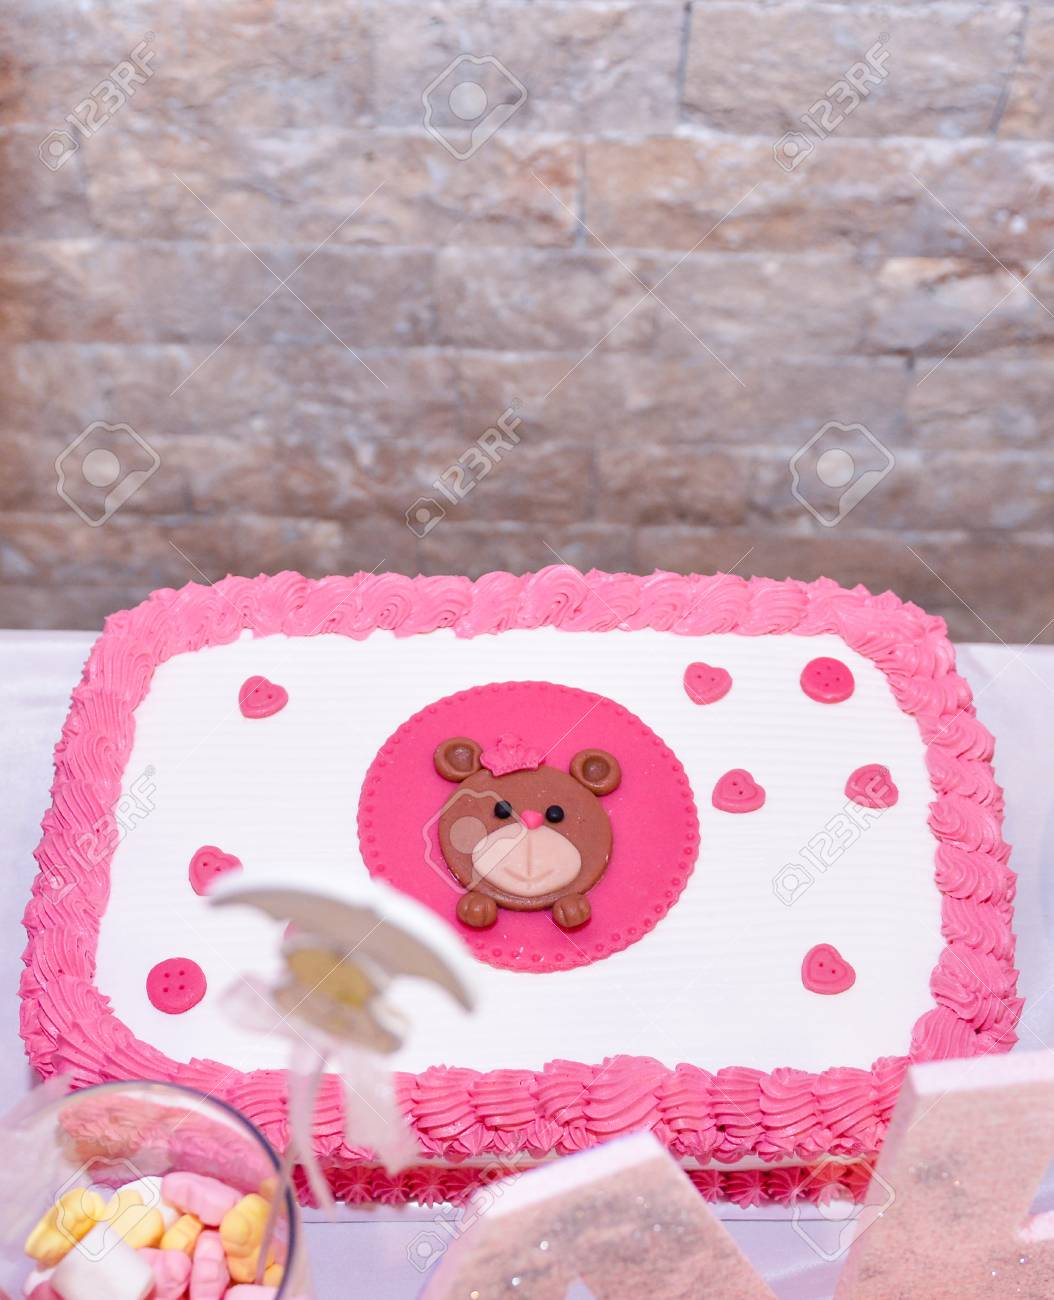 Admirable Baby Girl First Birthday Cake With Teddy Bear Image Of A Royalty Funny Birthday Cards Online Sheoxdamsfinfo